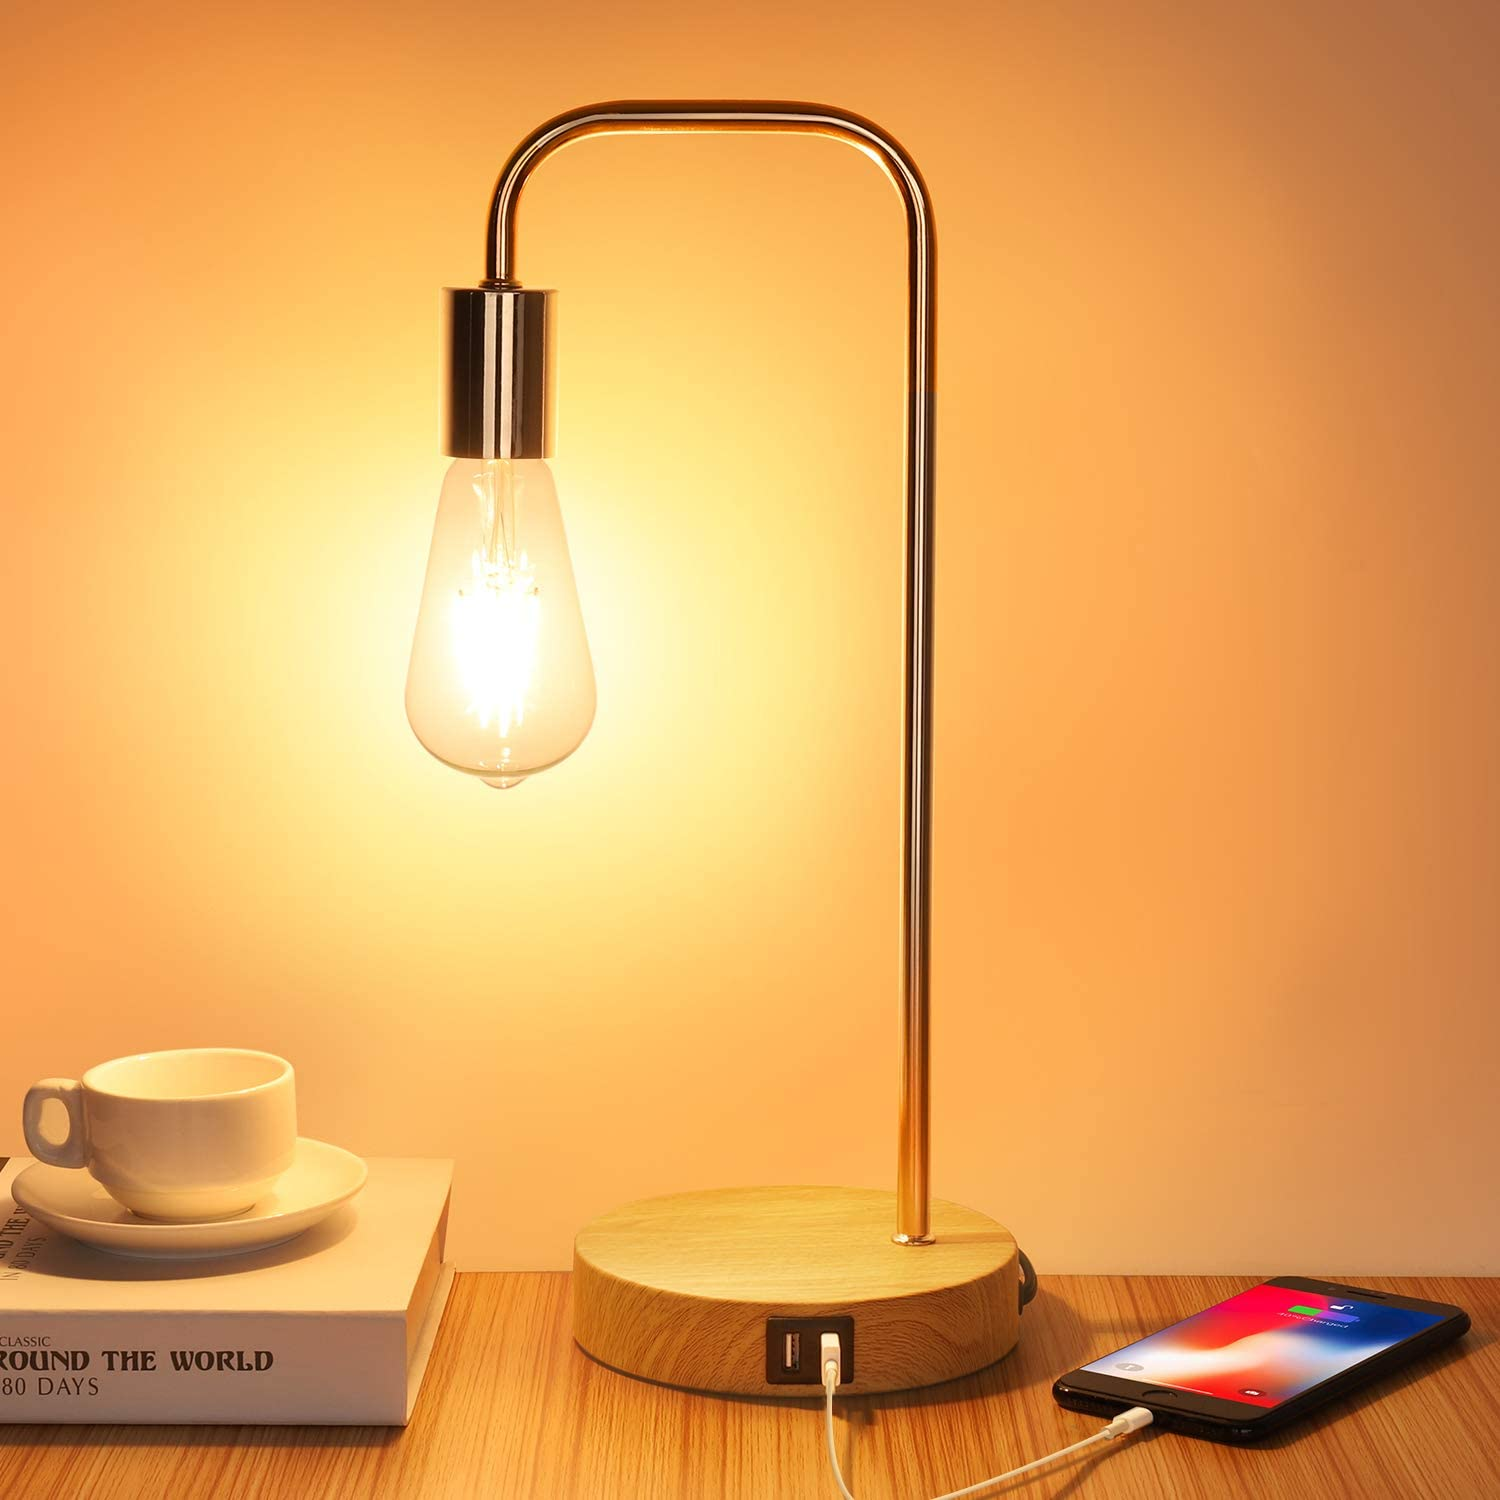 Touch Control LED Lamps 3-Way online shop Dimmable Table C USB 2 wholesale Lamp with